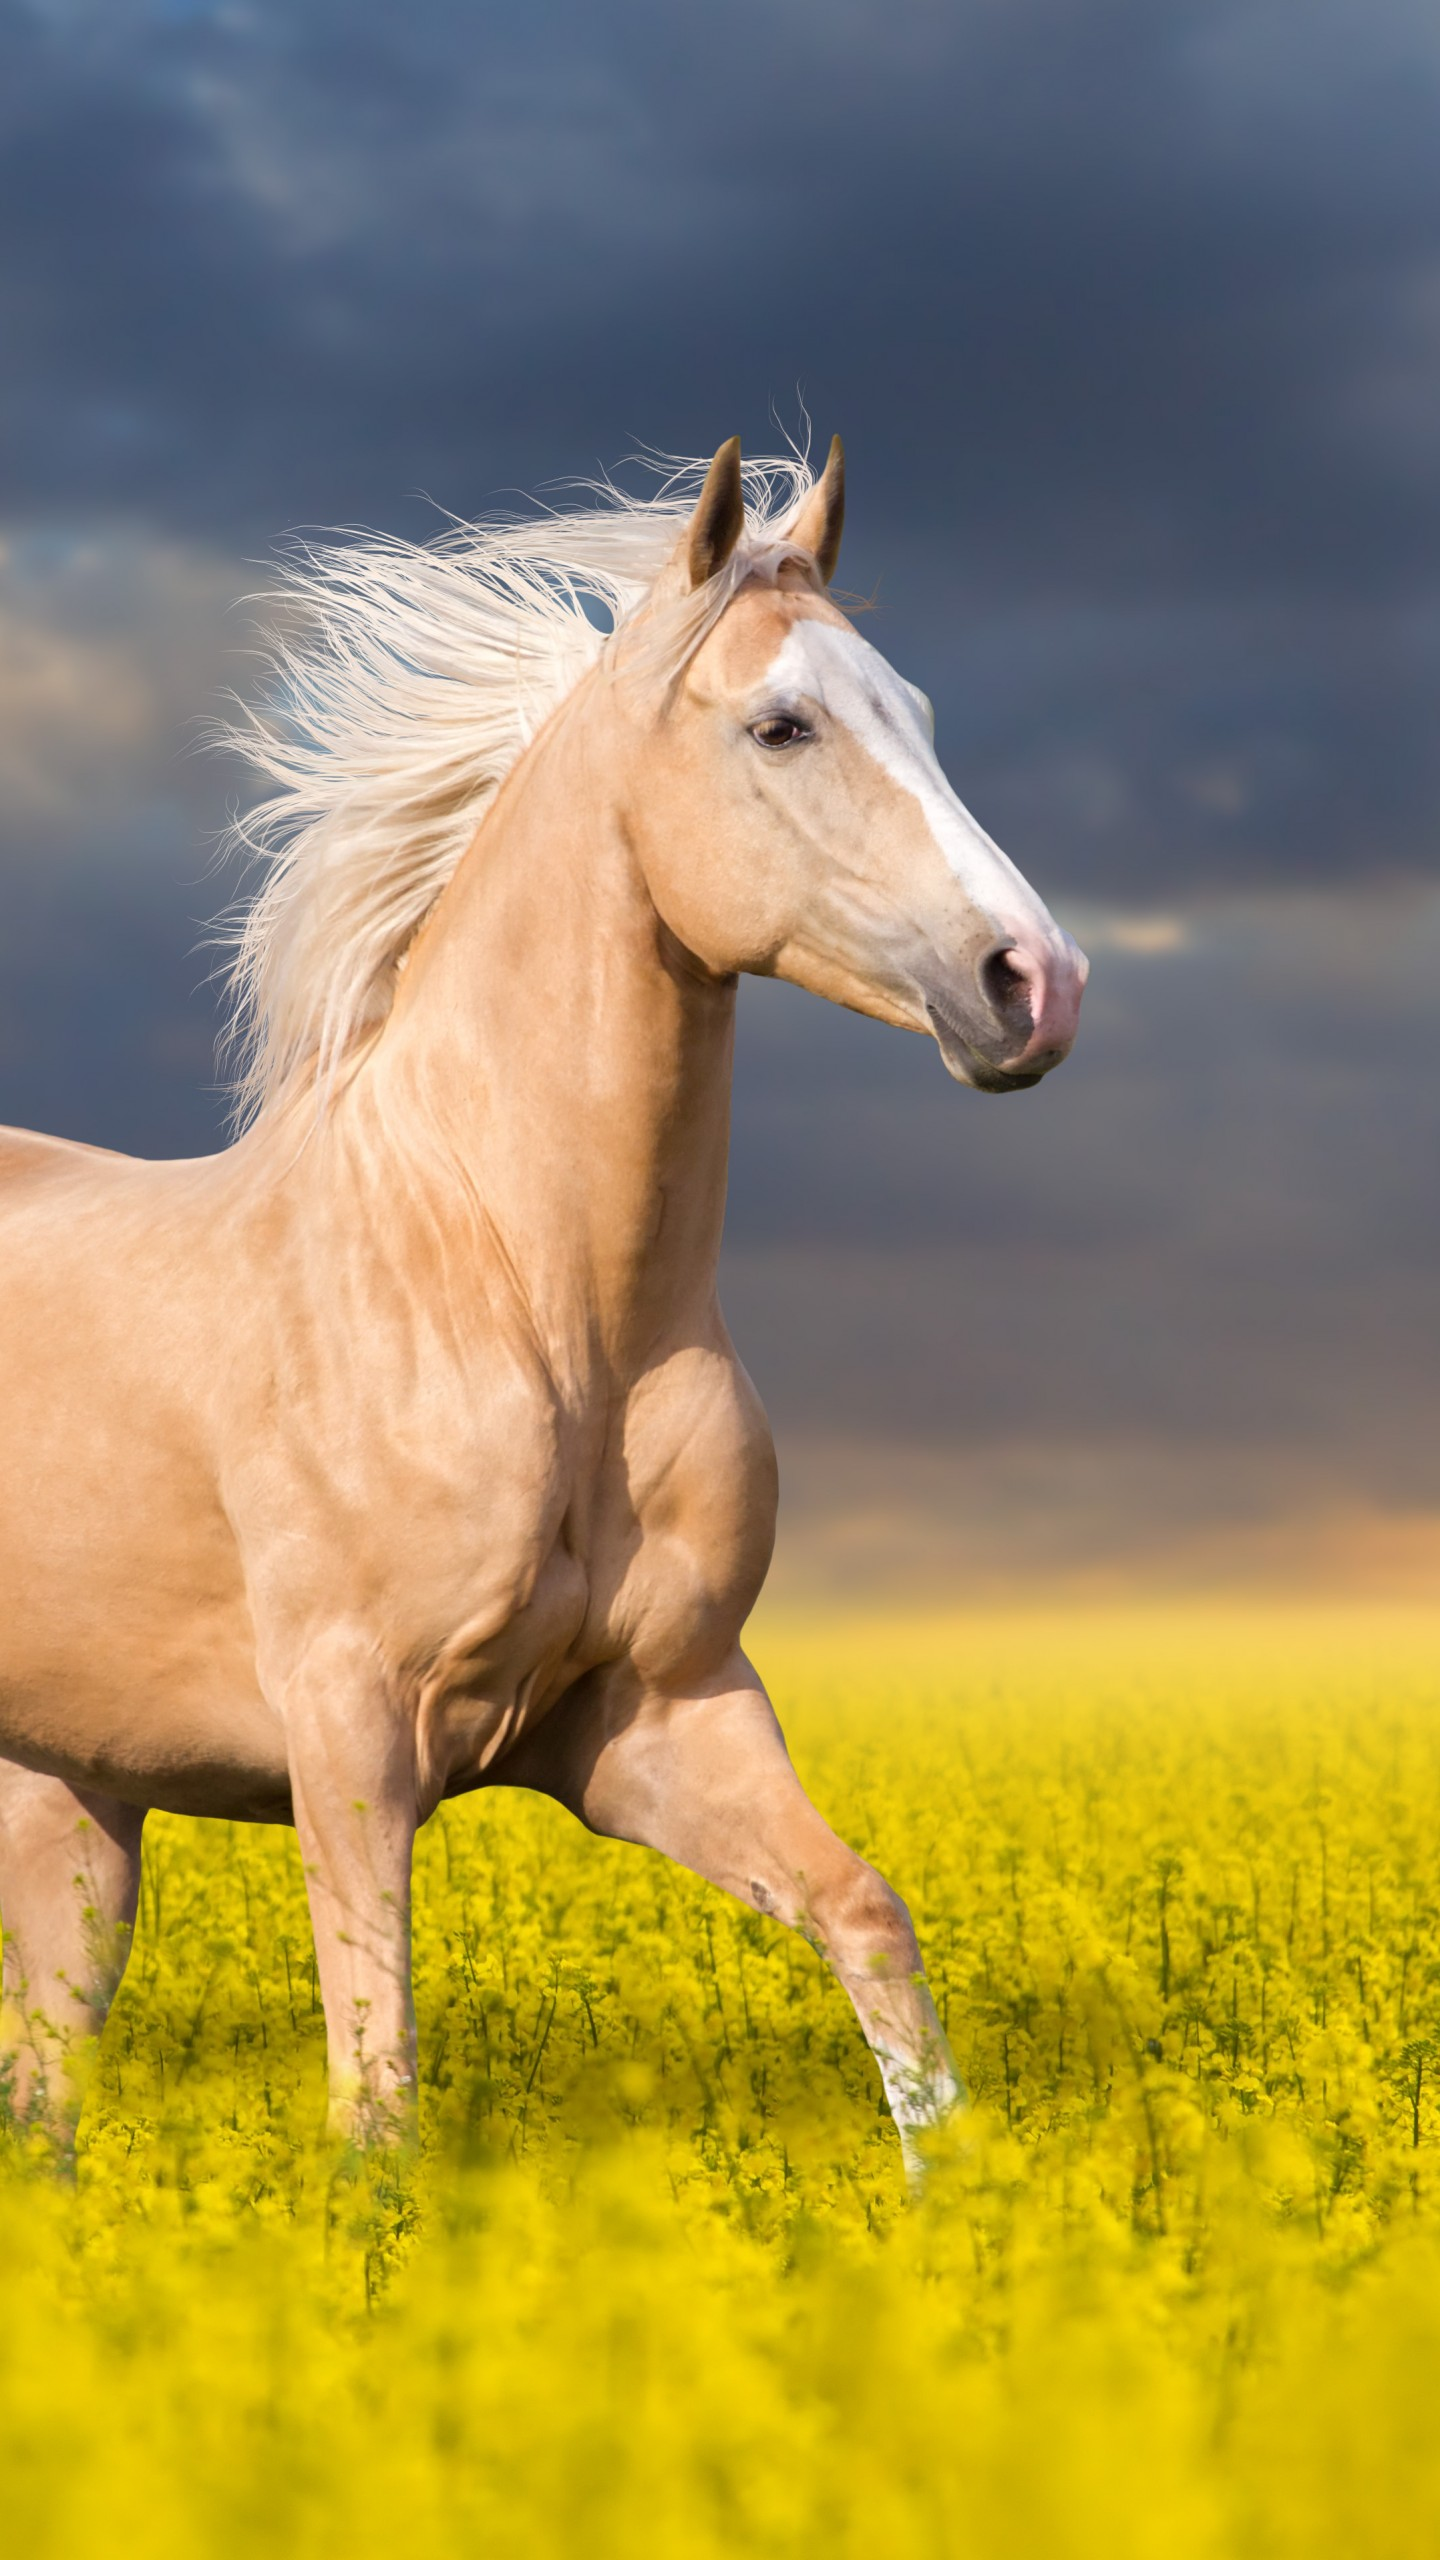 cute horse animals 5k wallpapers wild wallpapershome